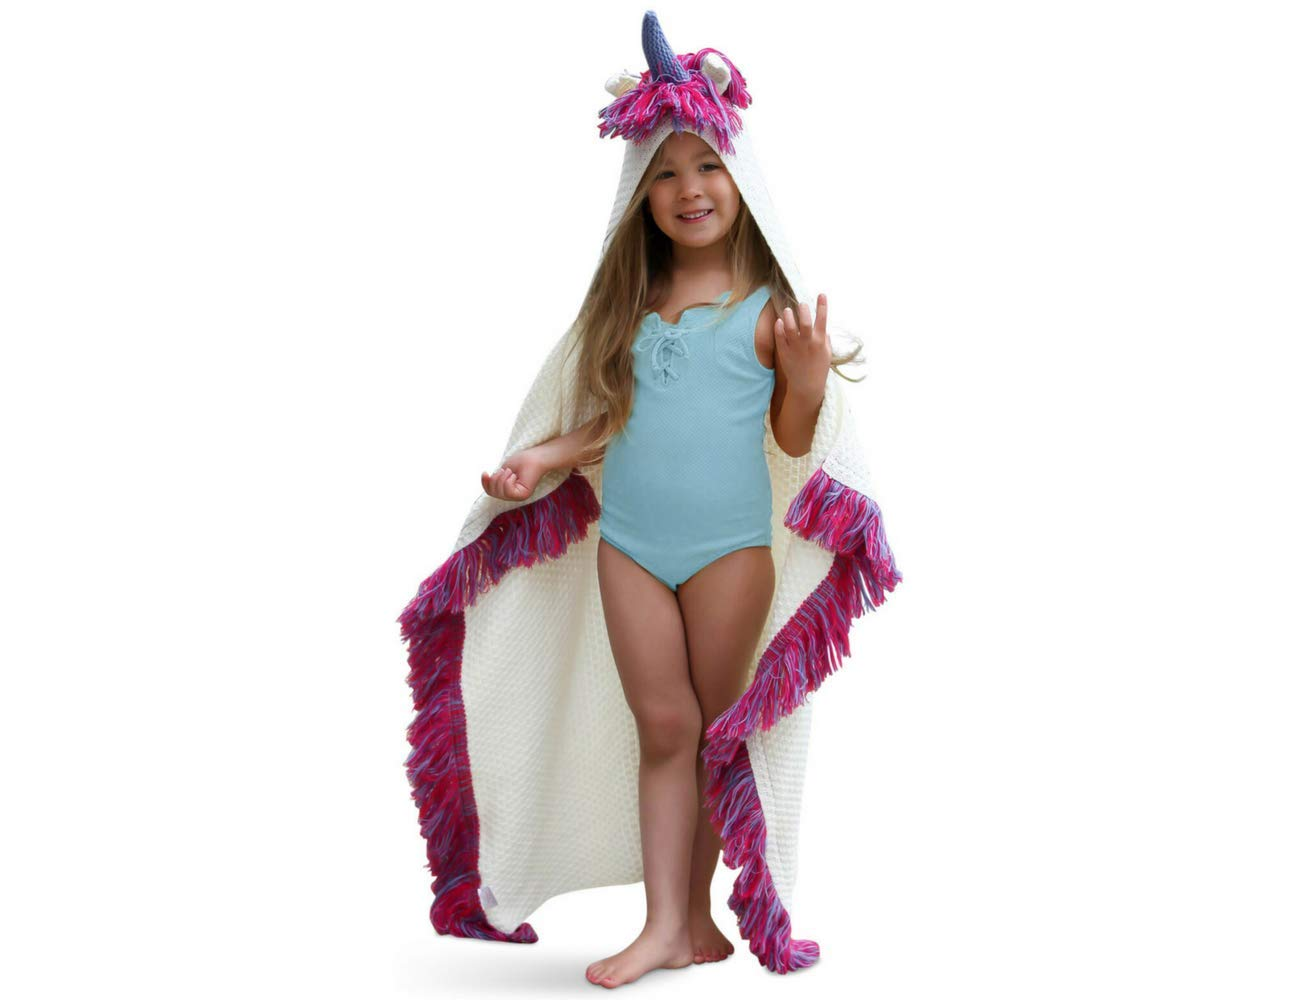 Born To Unicorn Blanket for Girls- Hooded, Kids Pink, Purple Wearable Crochet Knit w/Hood Throw Blankets Wrap, Toddlers Cute Plush Knitted Hoodie, Soft Kids Blanket Gift, Cozy Magic Cloak w/Hood by Born To Unicorn (Image #1)